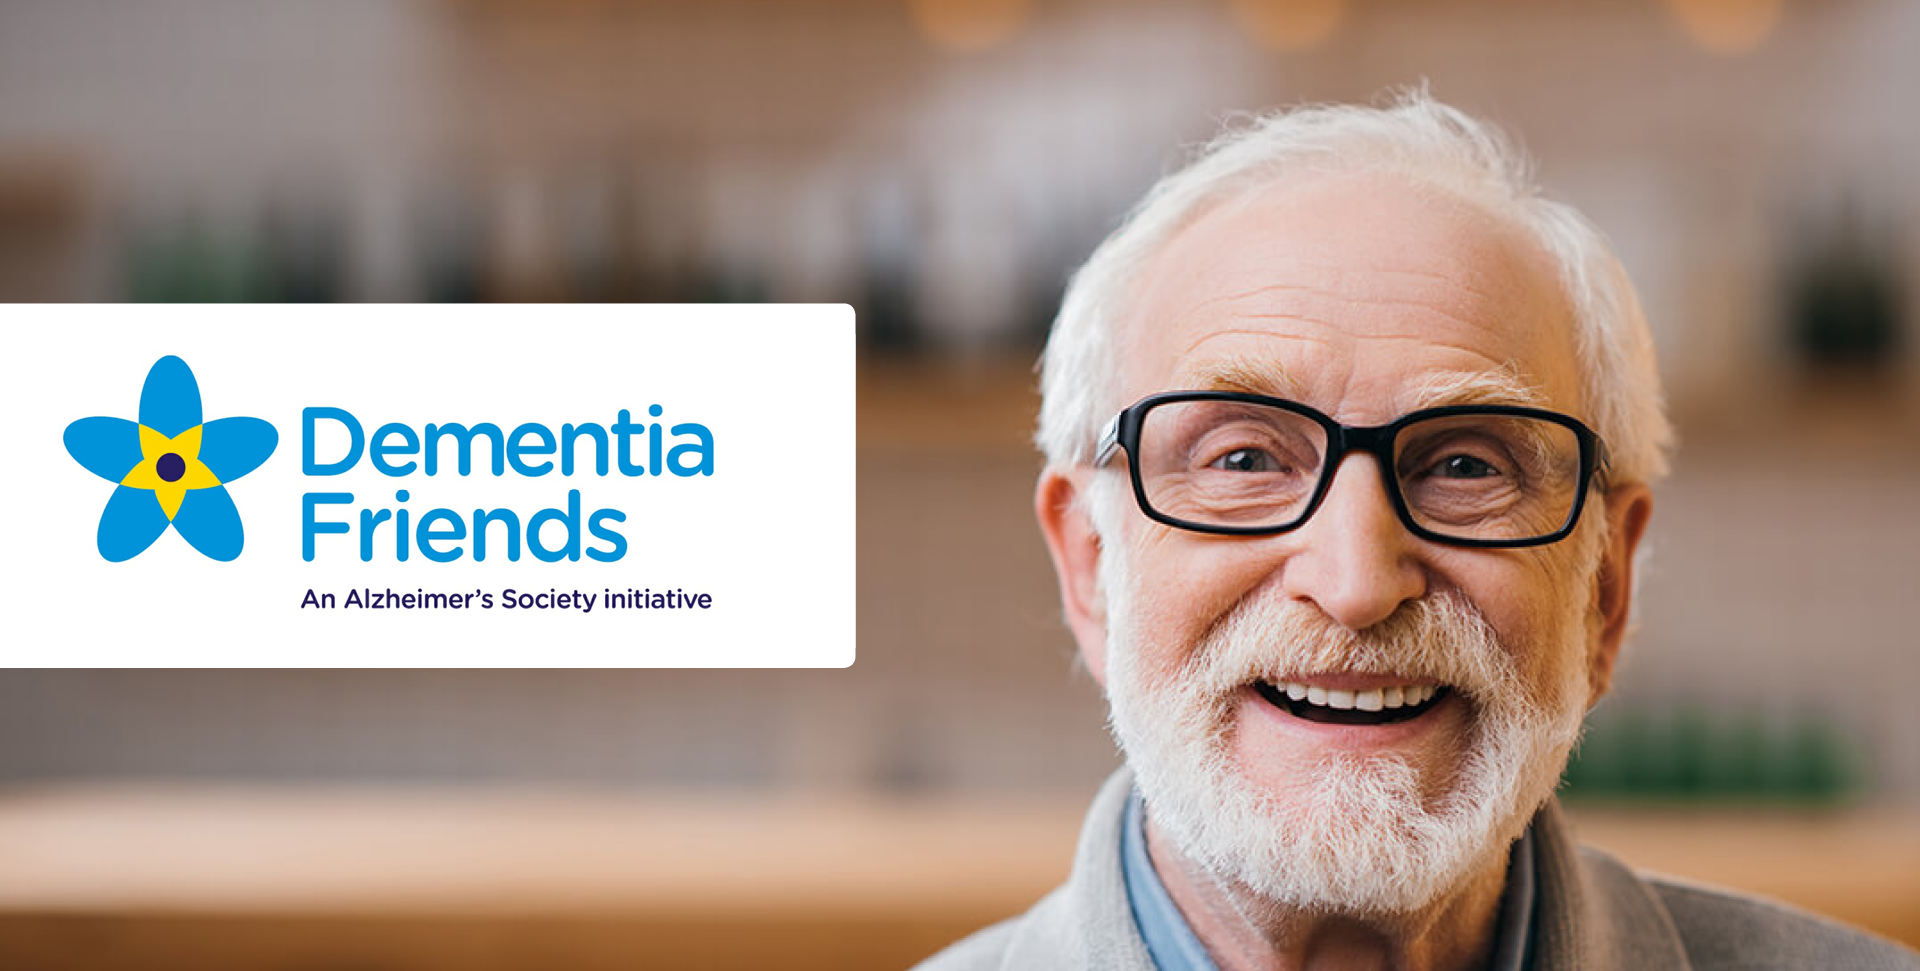 CPR Guardian is now proud to be supporting Dementia Friends